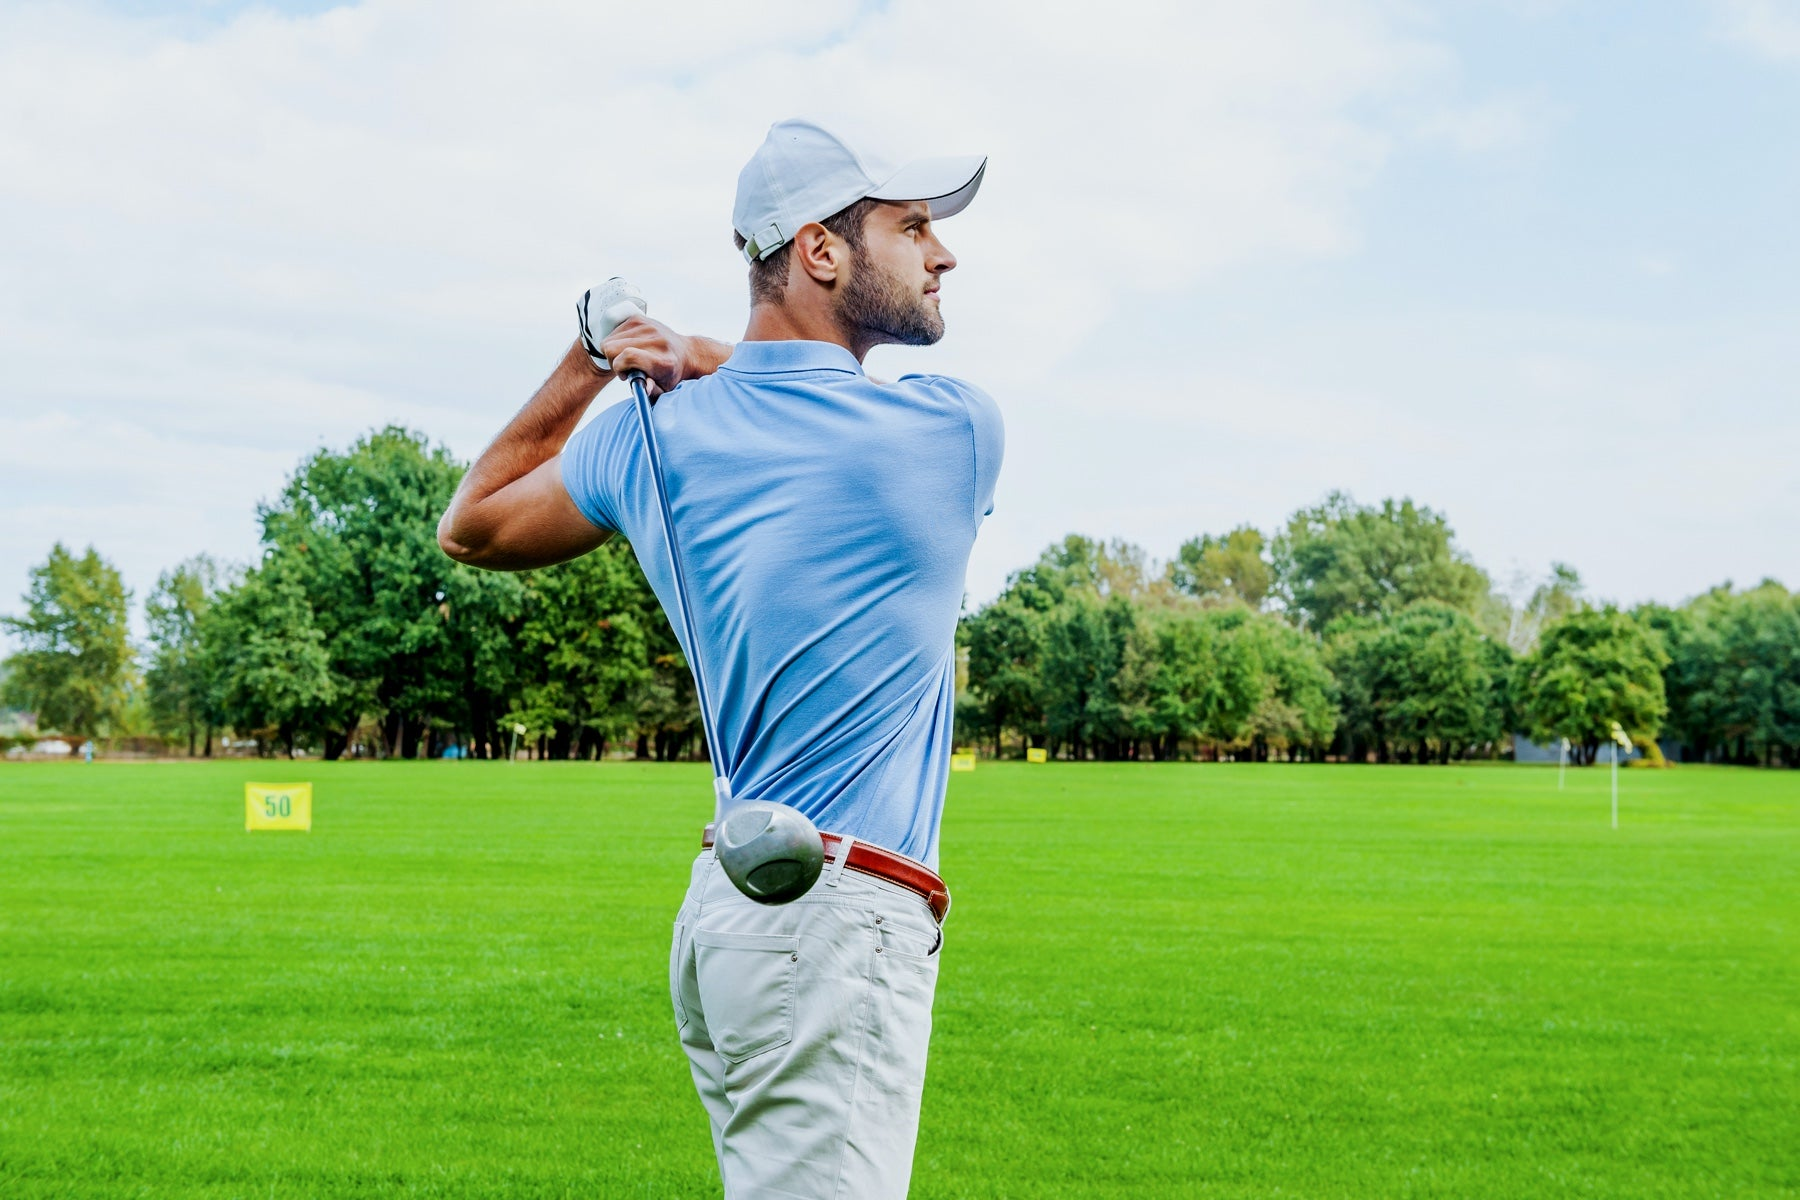 Golf Fitness Certification Online